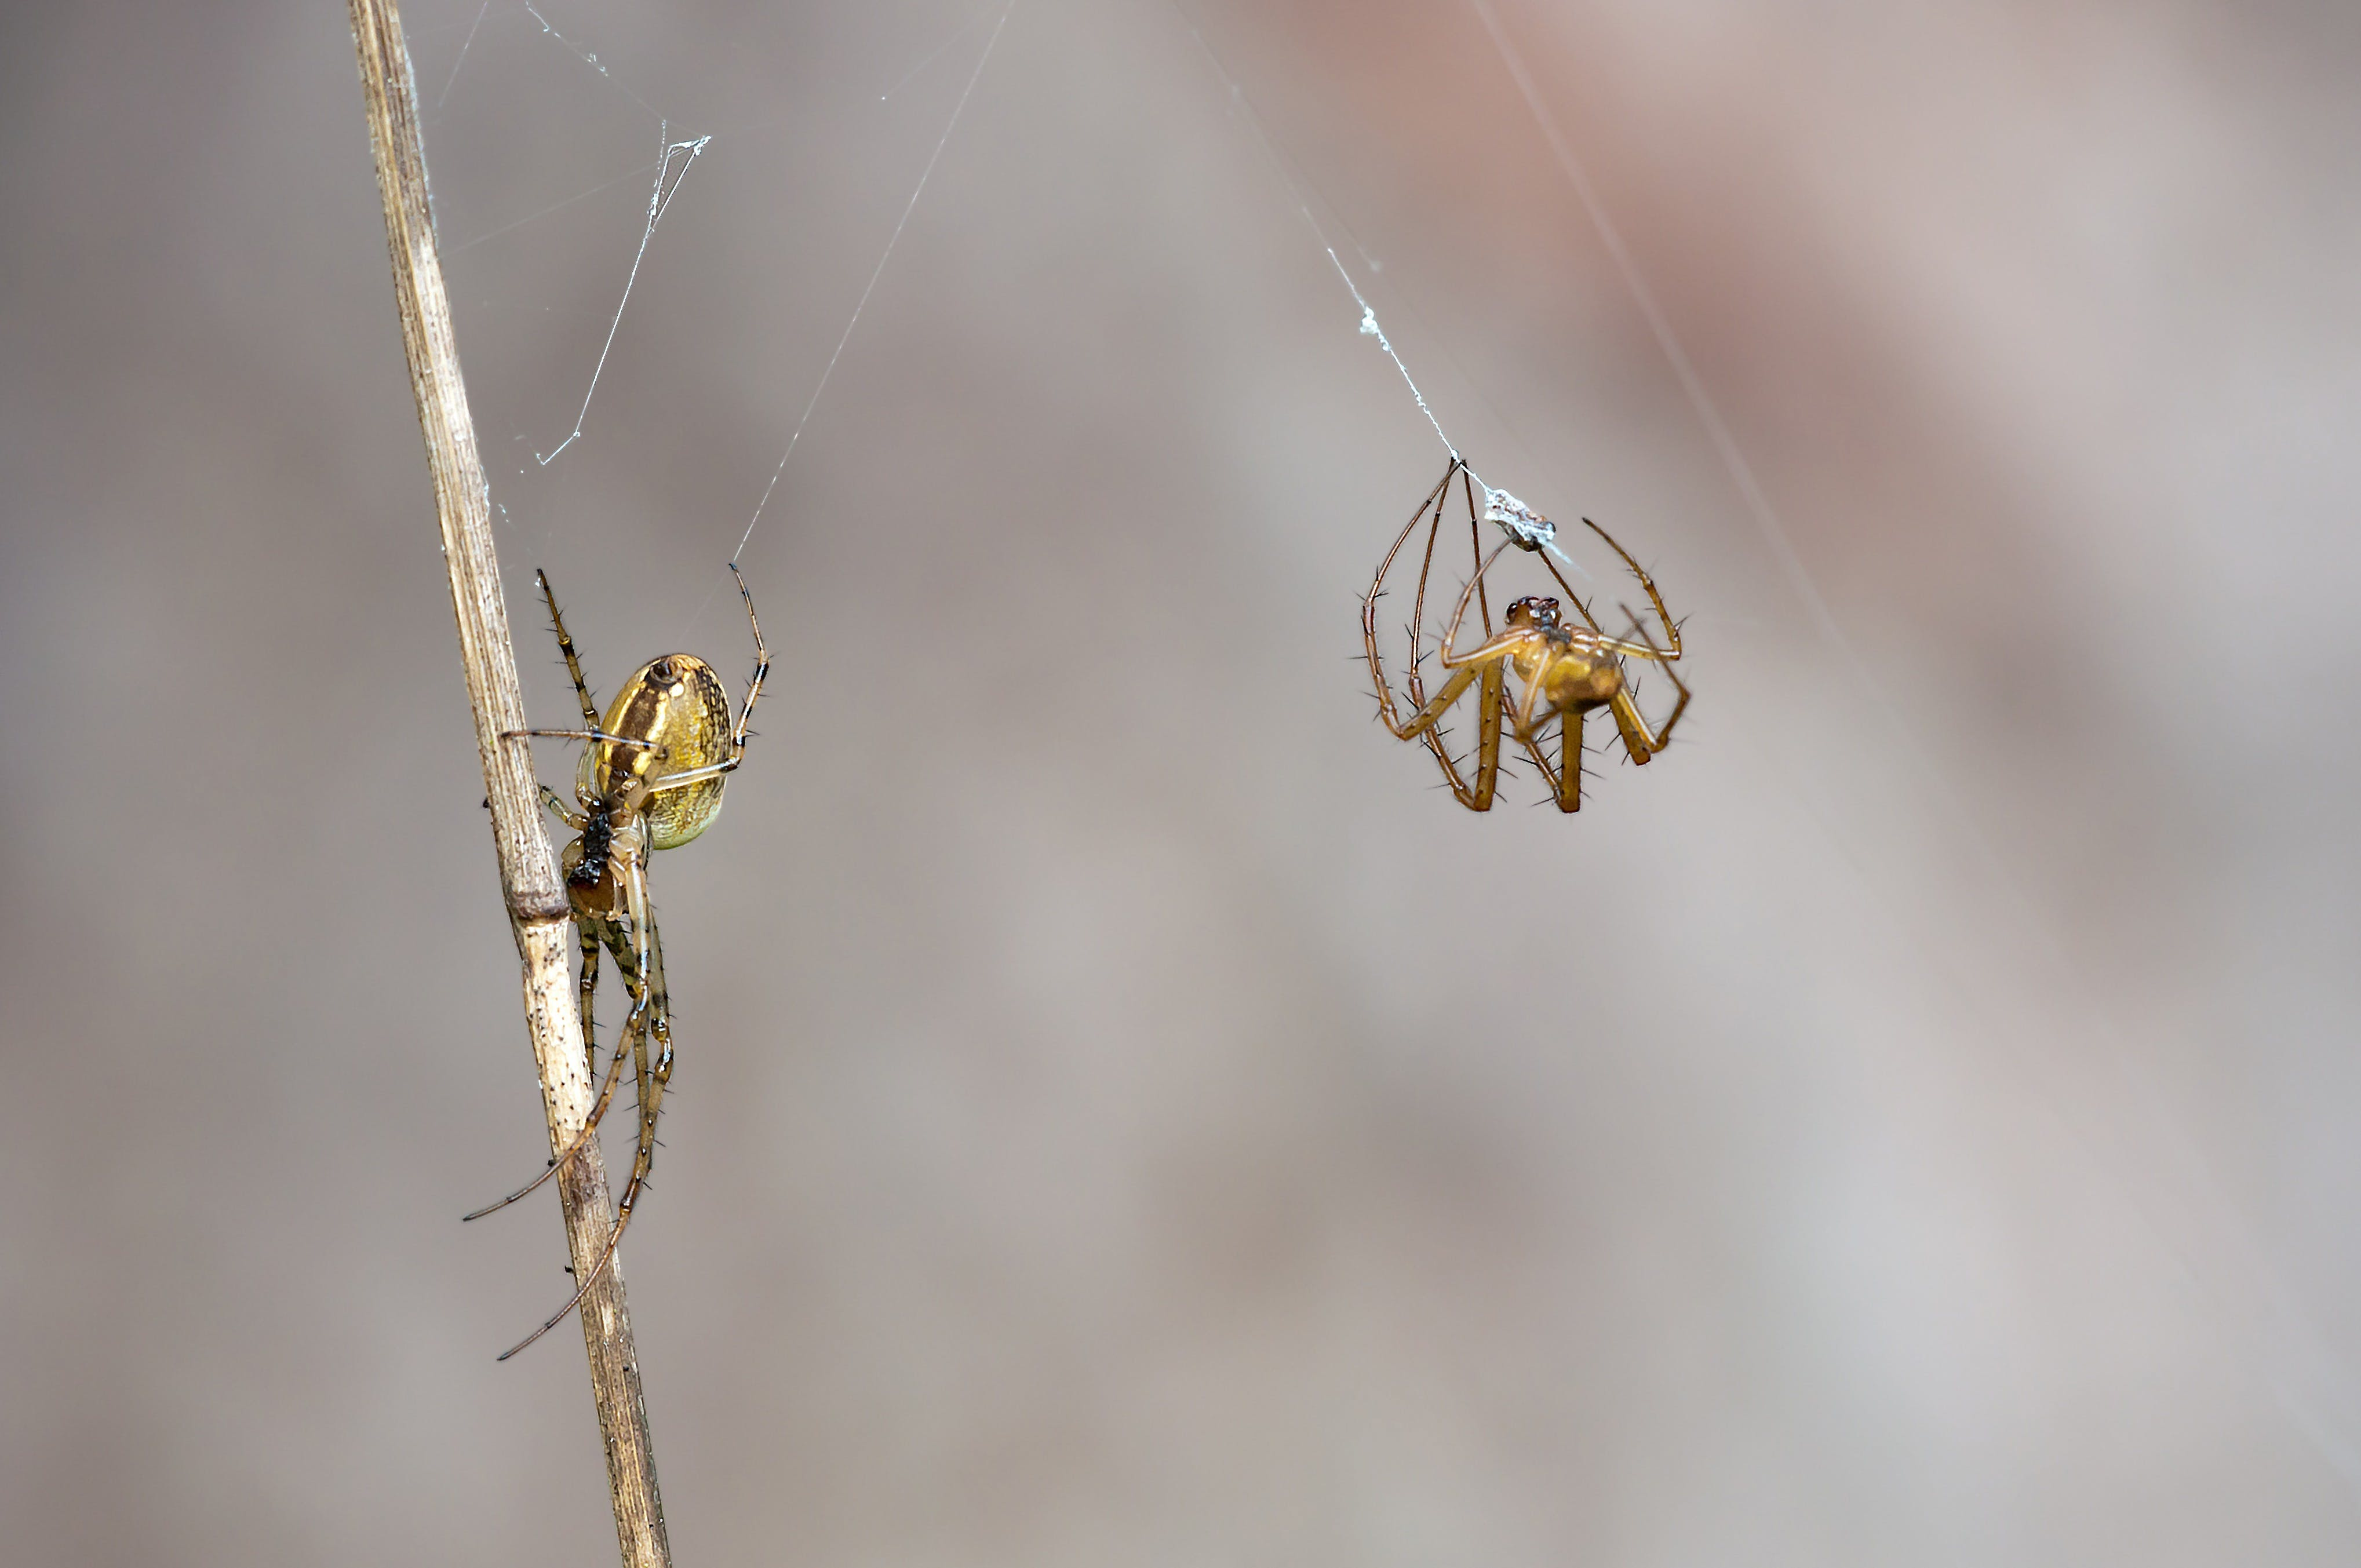 2 Yellow Orb Weaver Spider Weaving Web